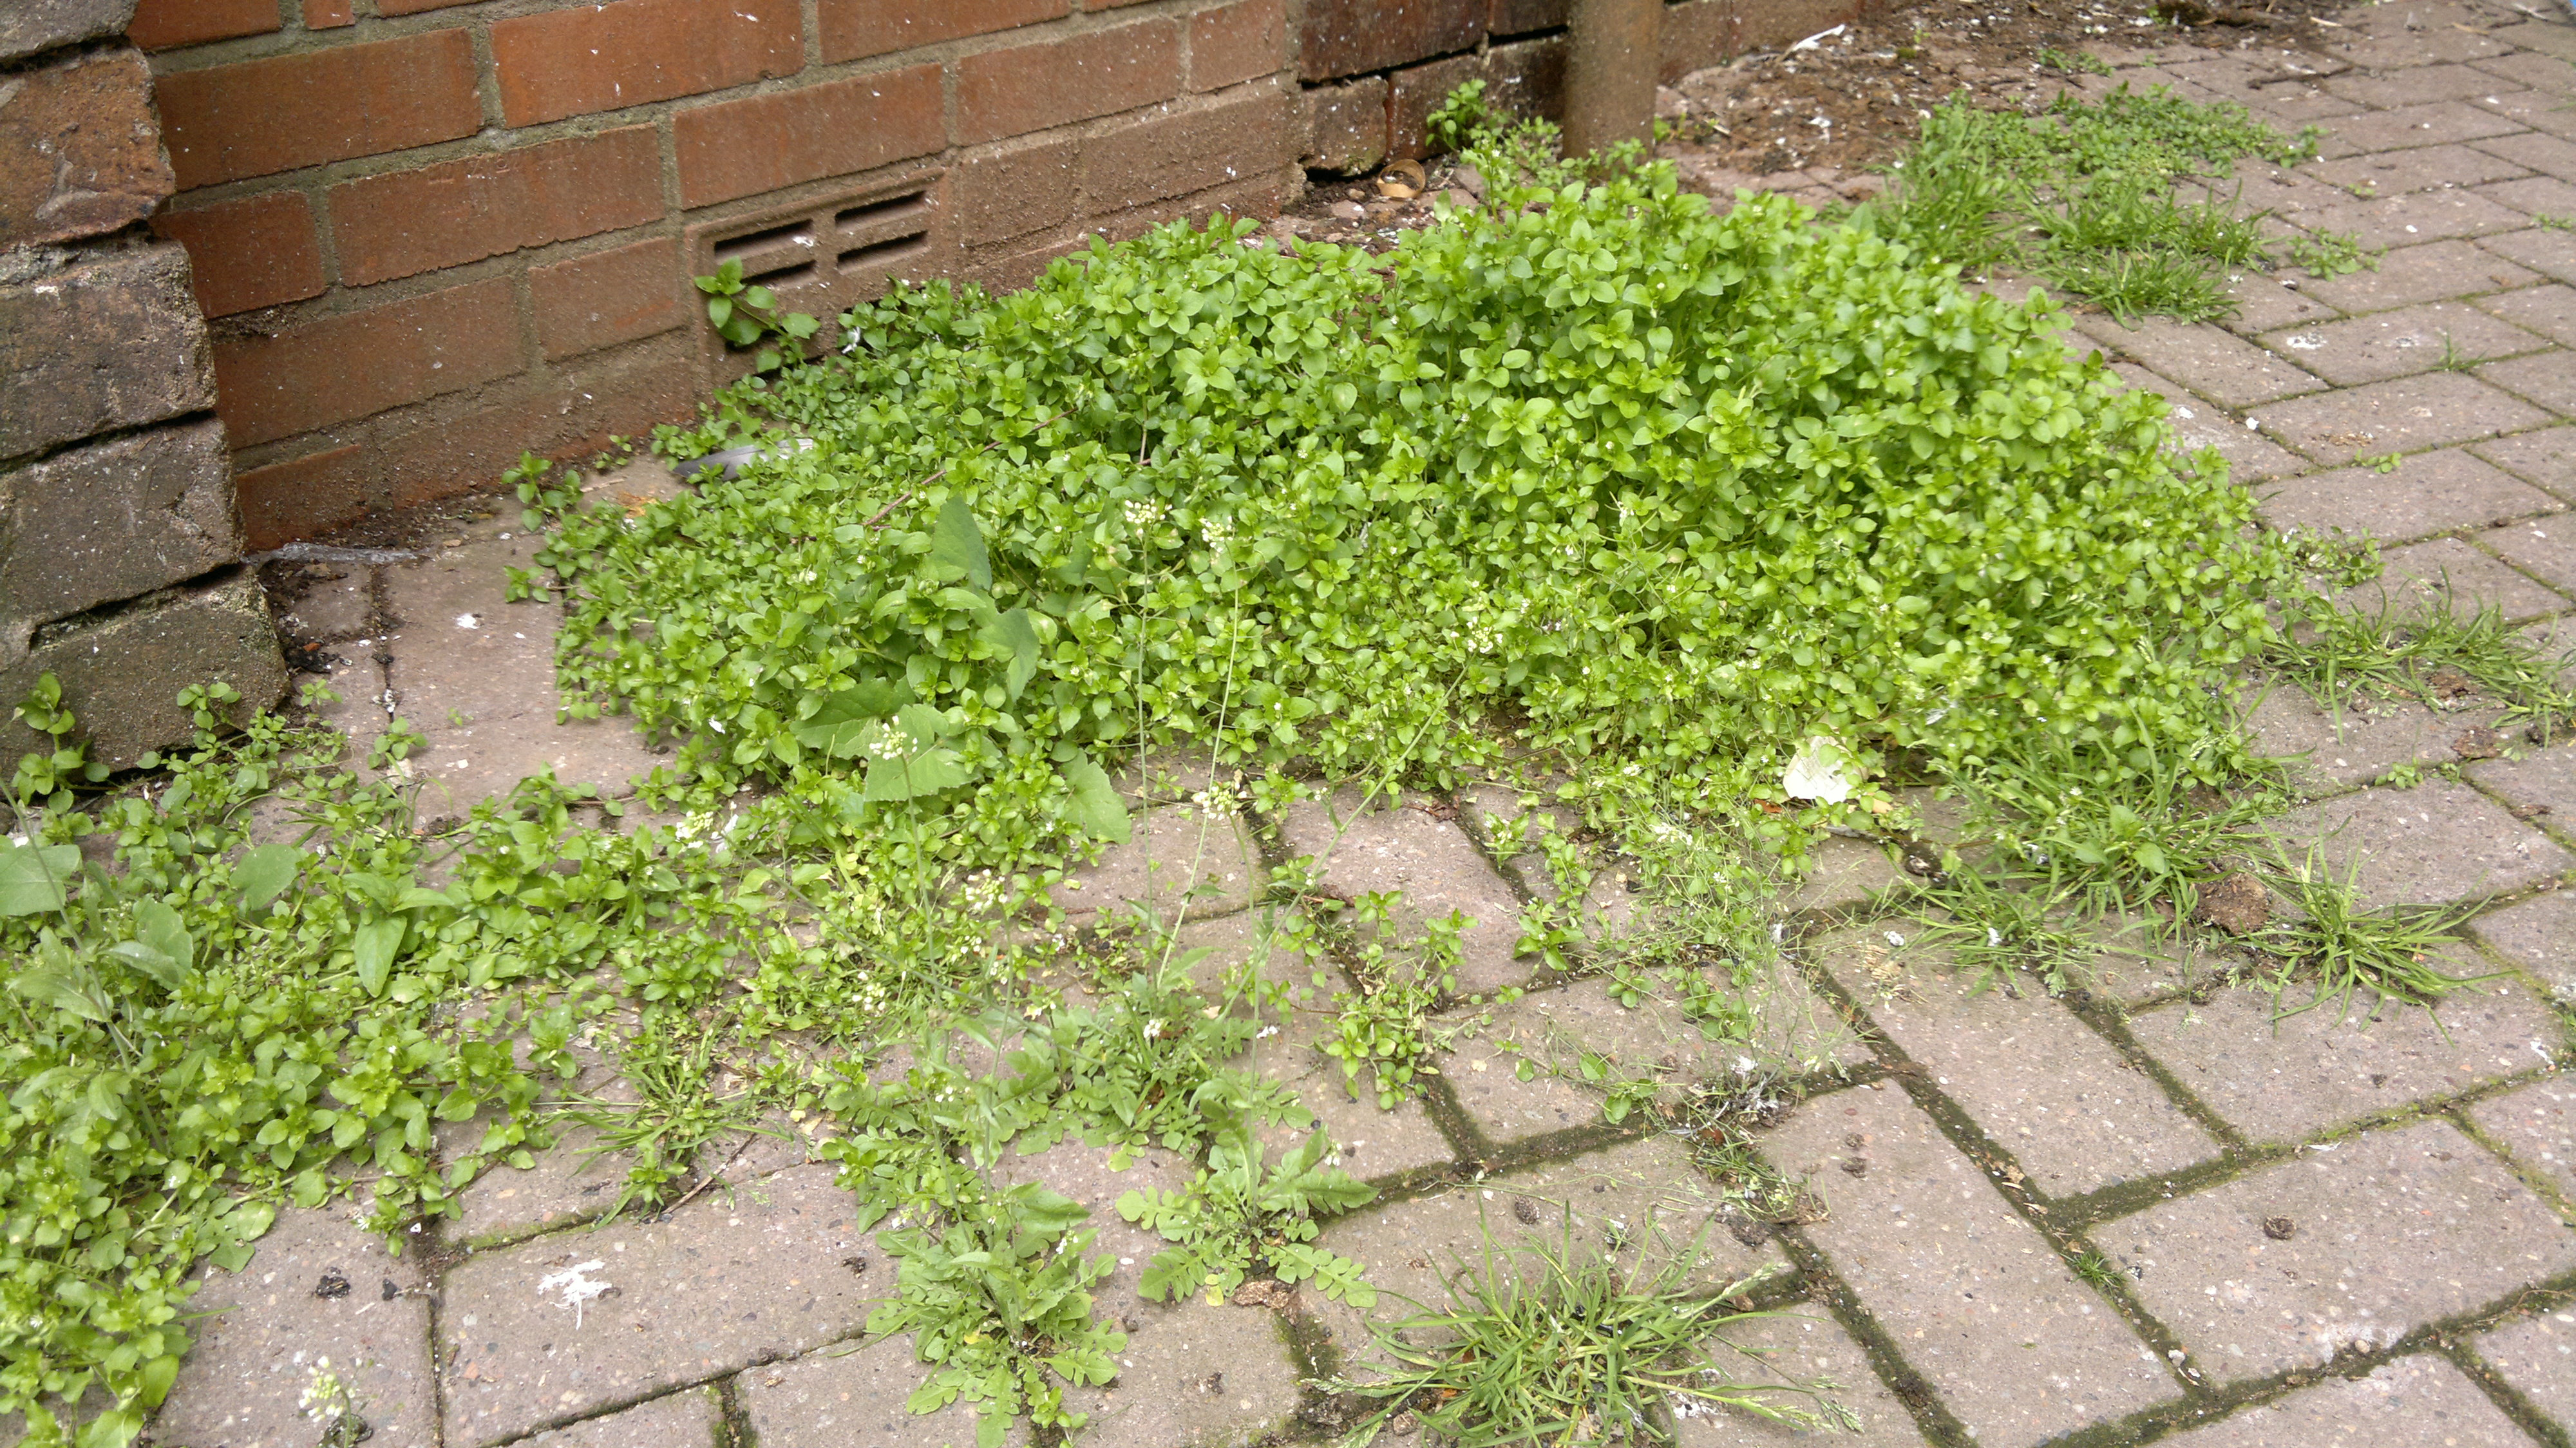 Chickweed is also common in urban environments be aware of pollution